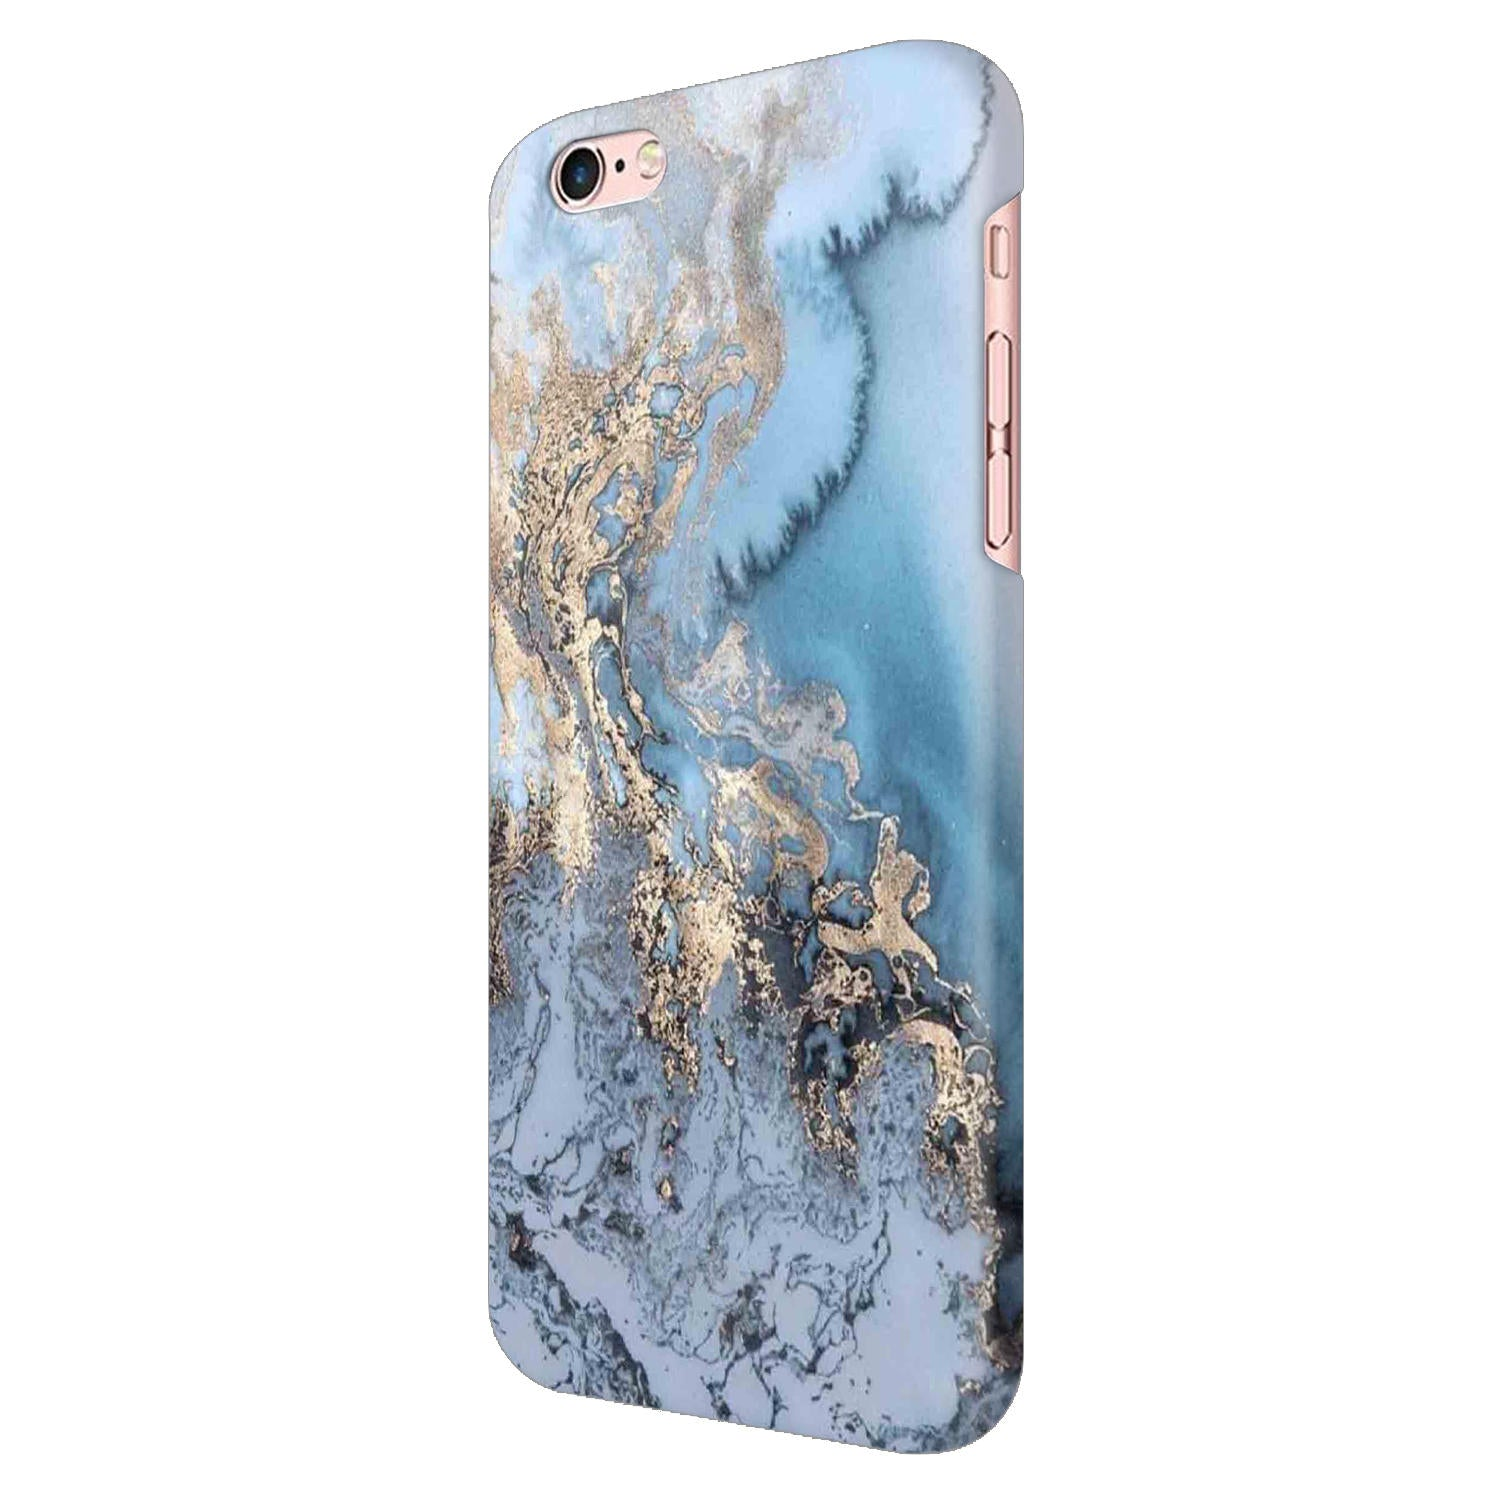 Blue Marble iPhone 6 Mobile Cover Case - MADANYU